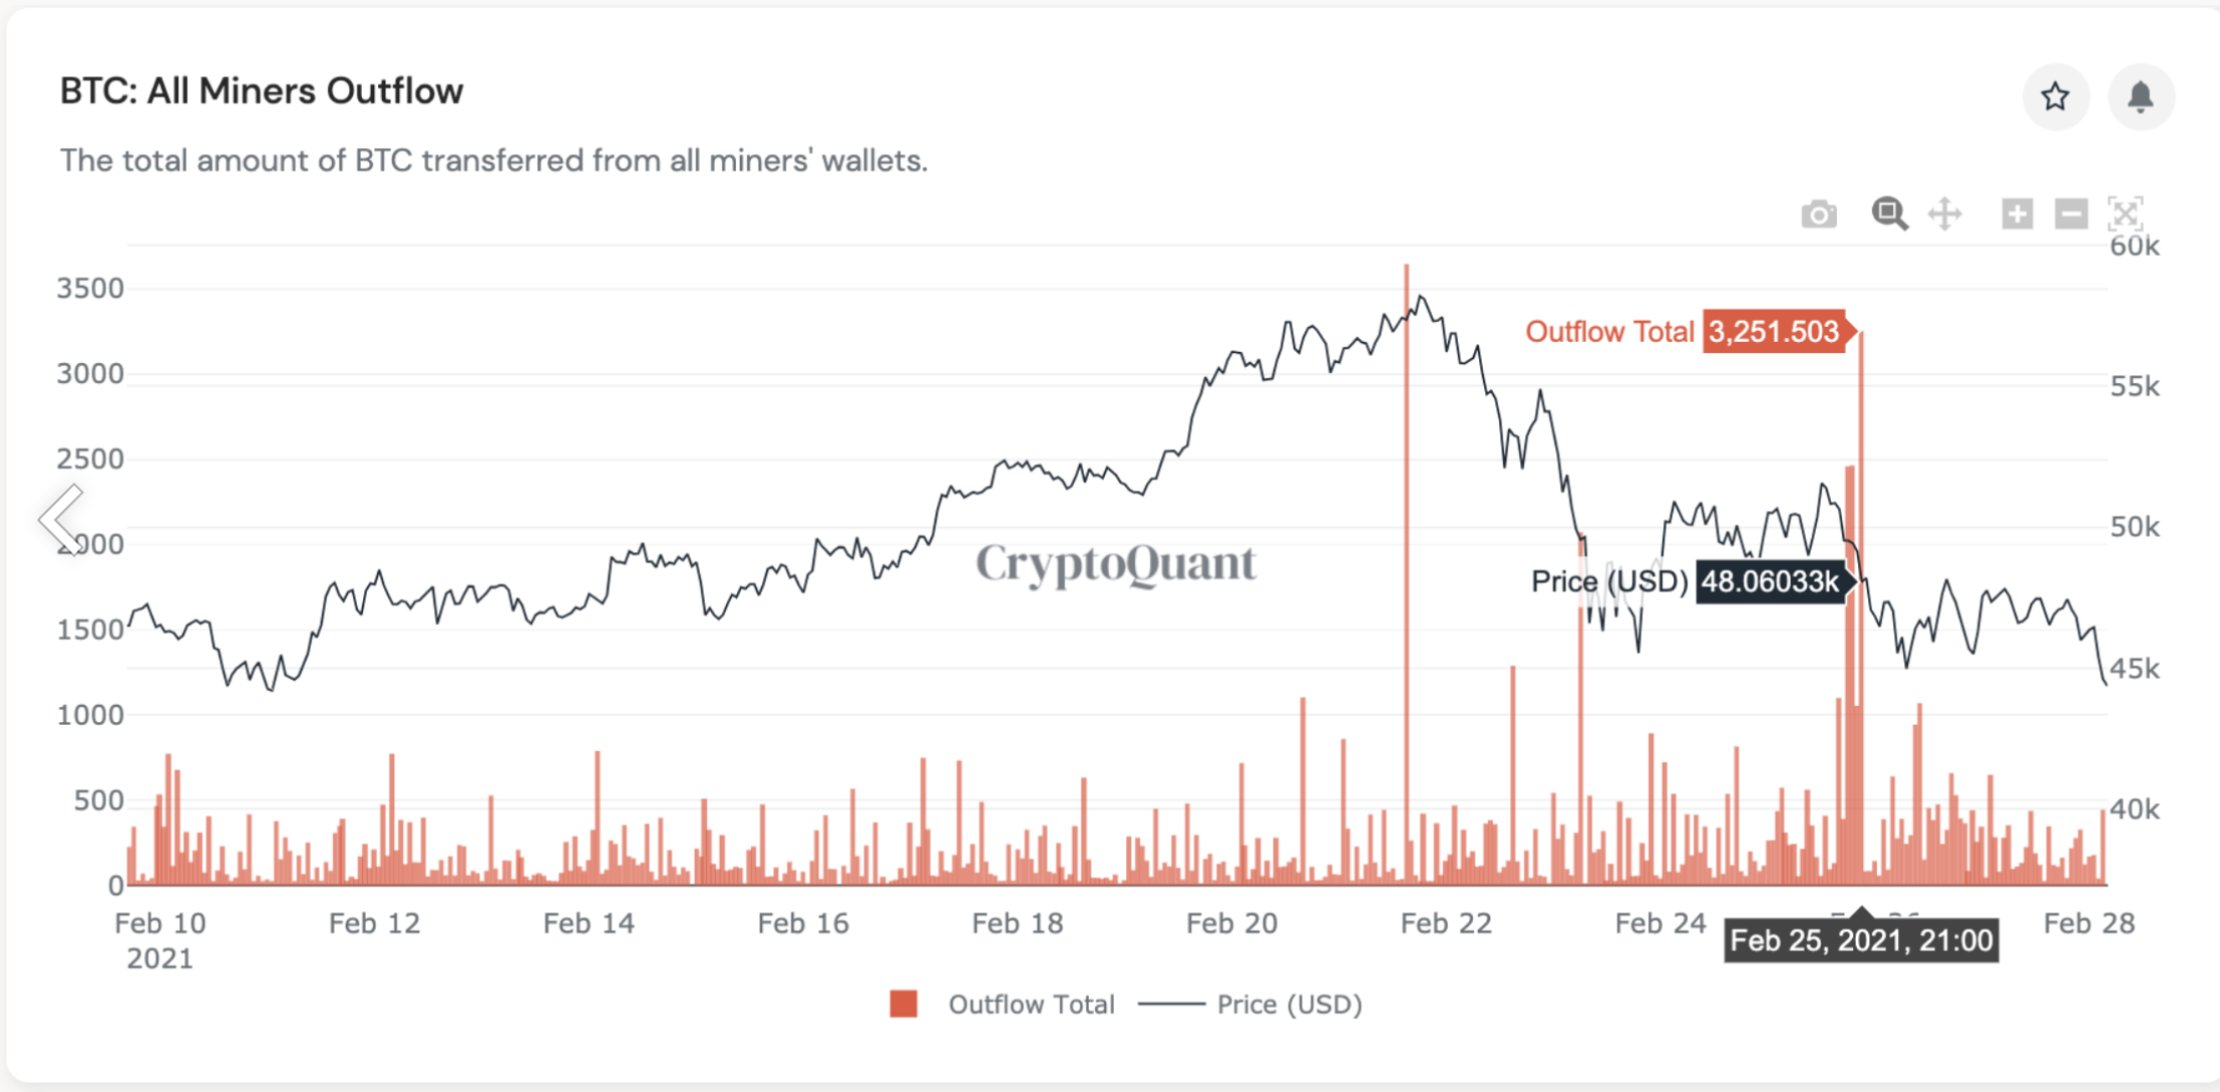 Market Research Report: Spike In Treasury Yields Sent Stocks, Crypto and Commodities Reeling, USD Rallying - all btc miners outflow.jfif